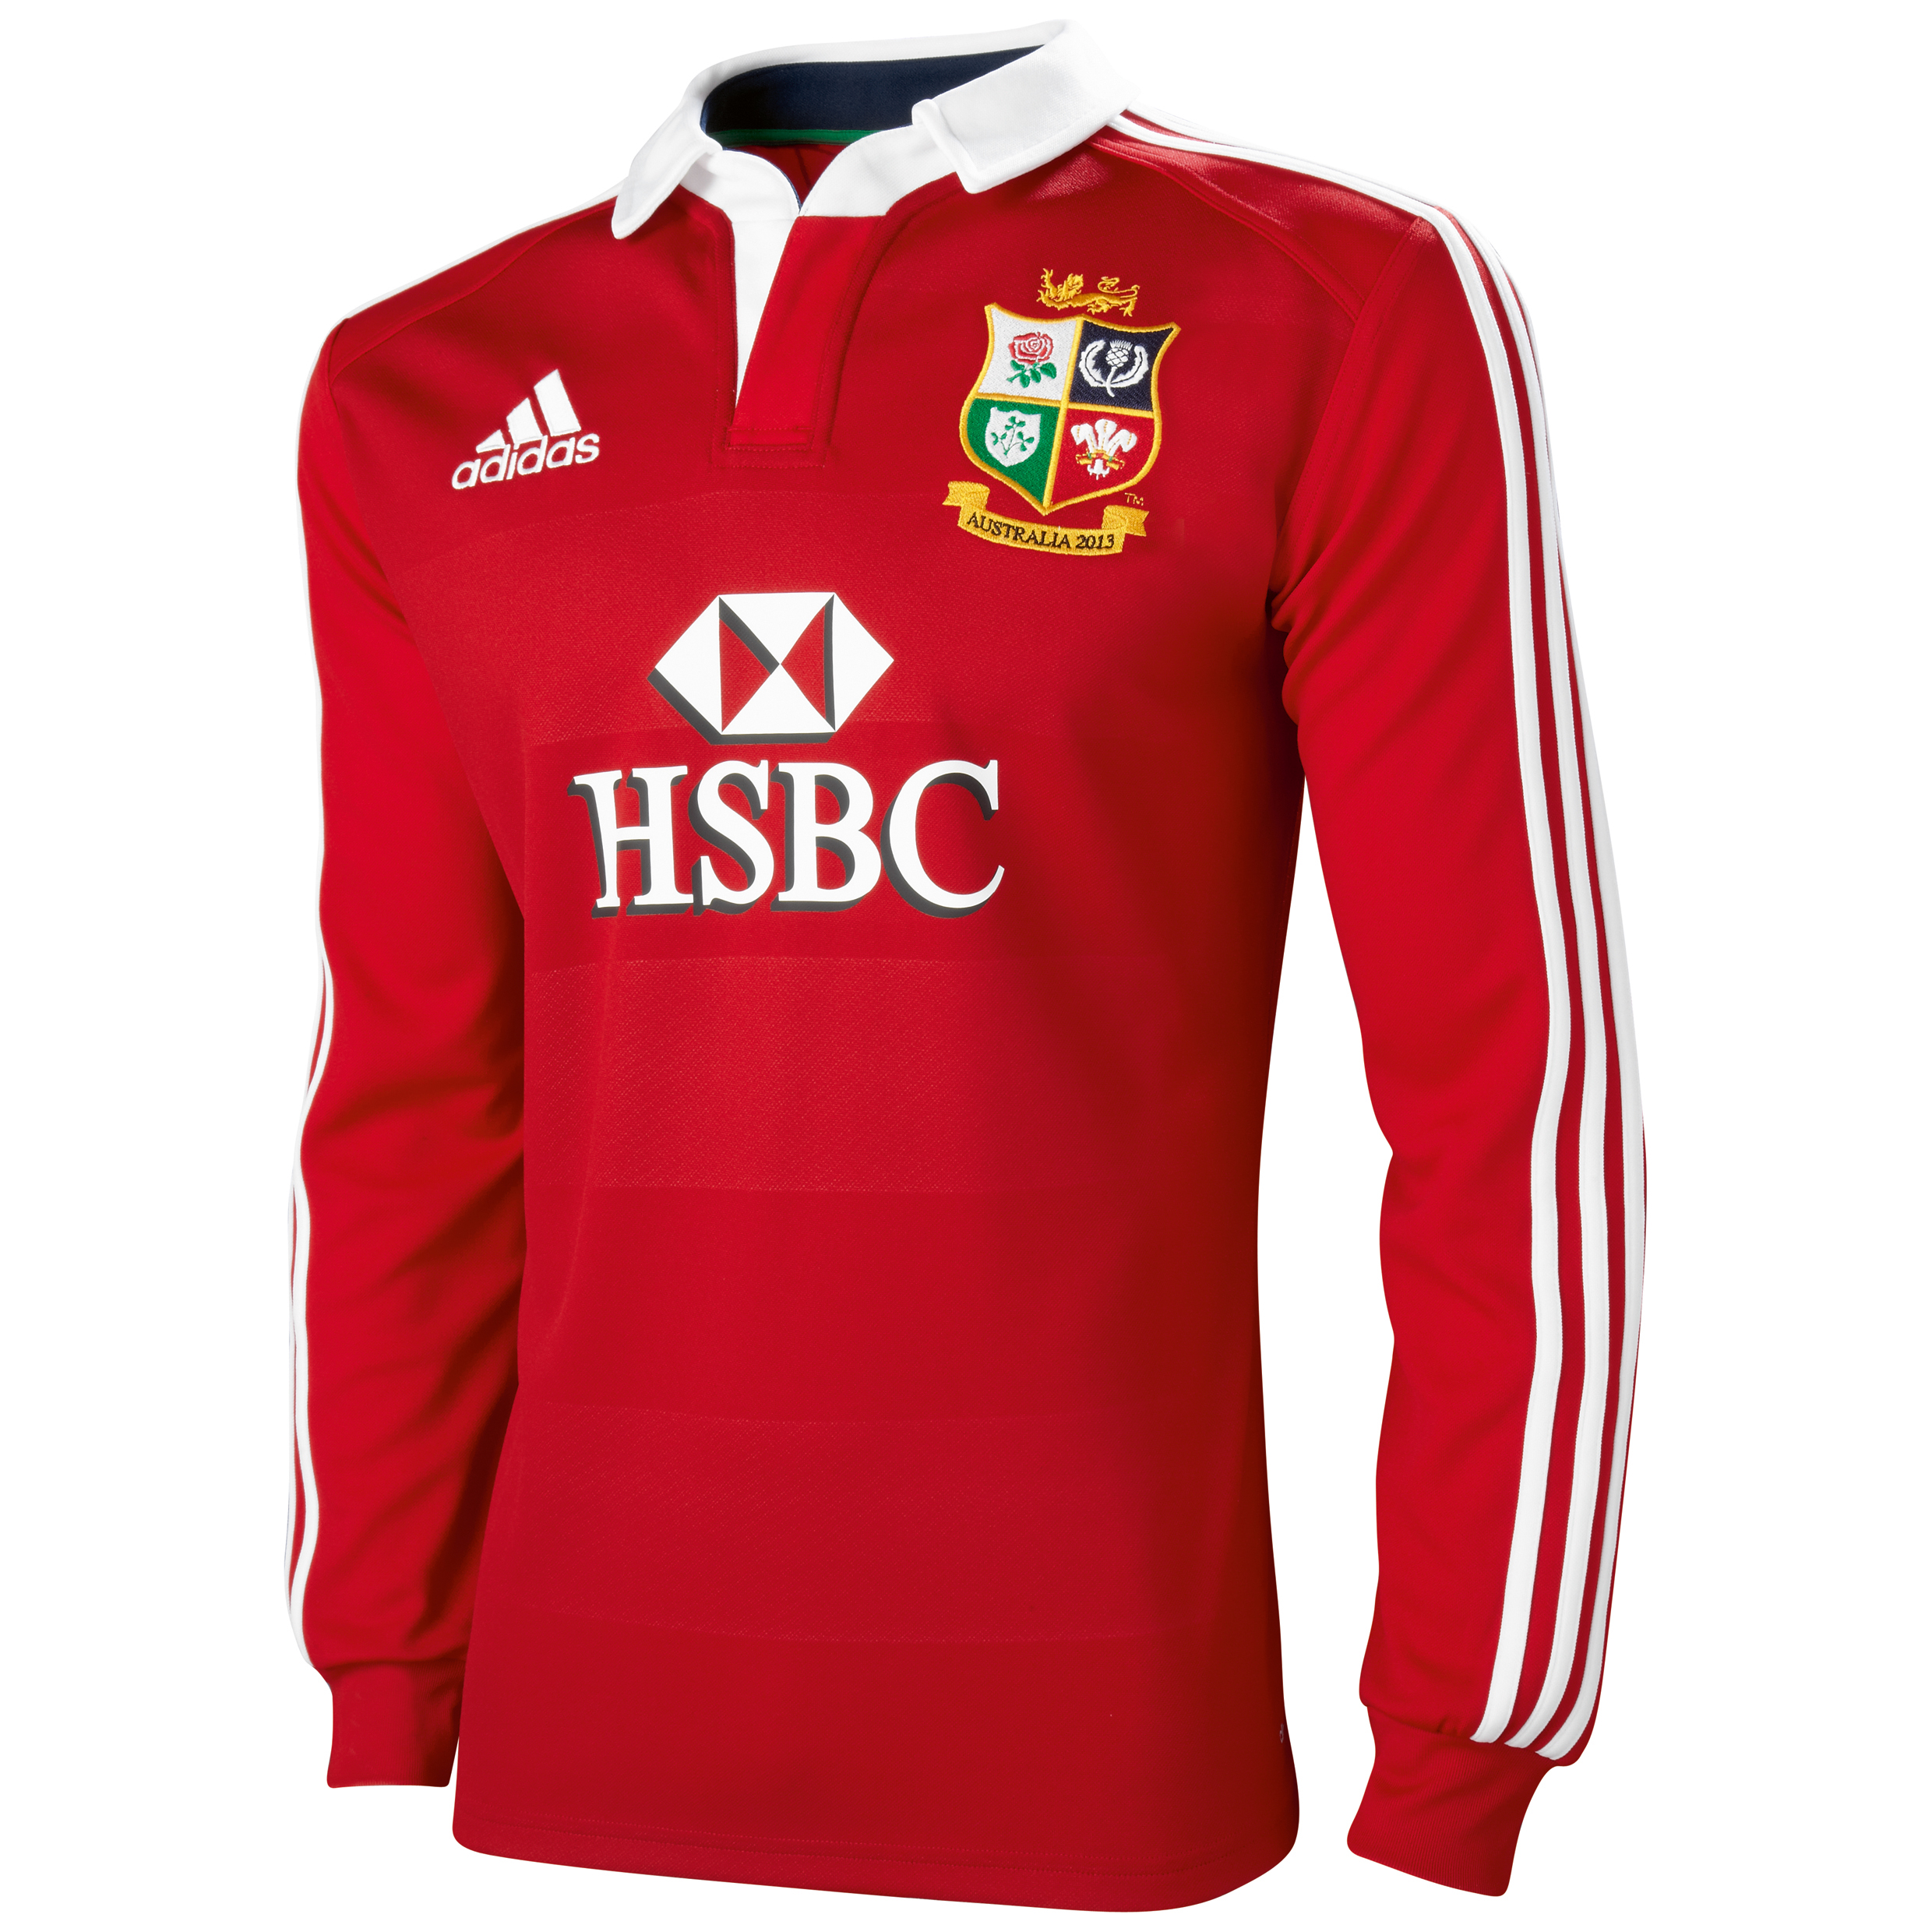 British & Irish Lions Home Shirt 2013 - Long Sleeve